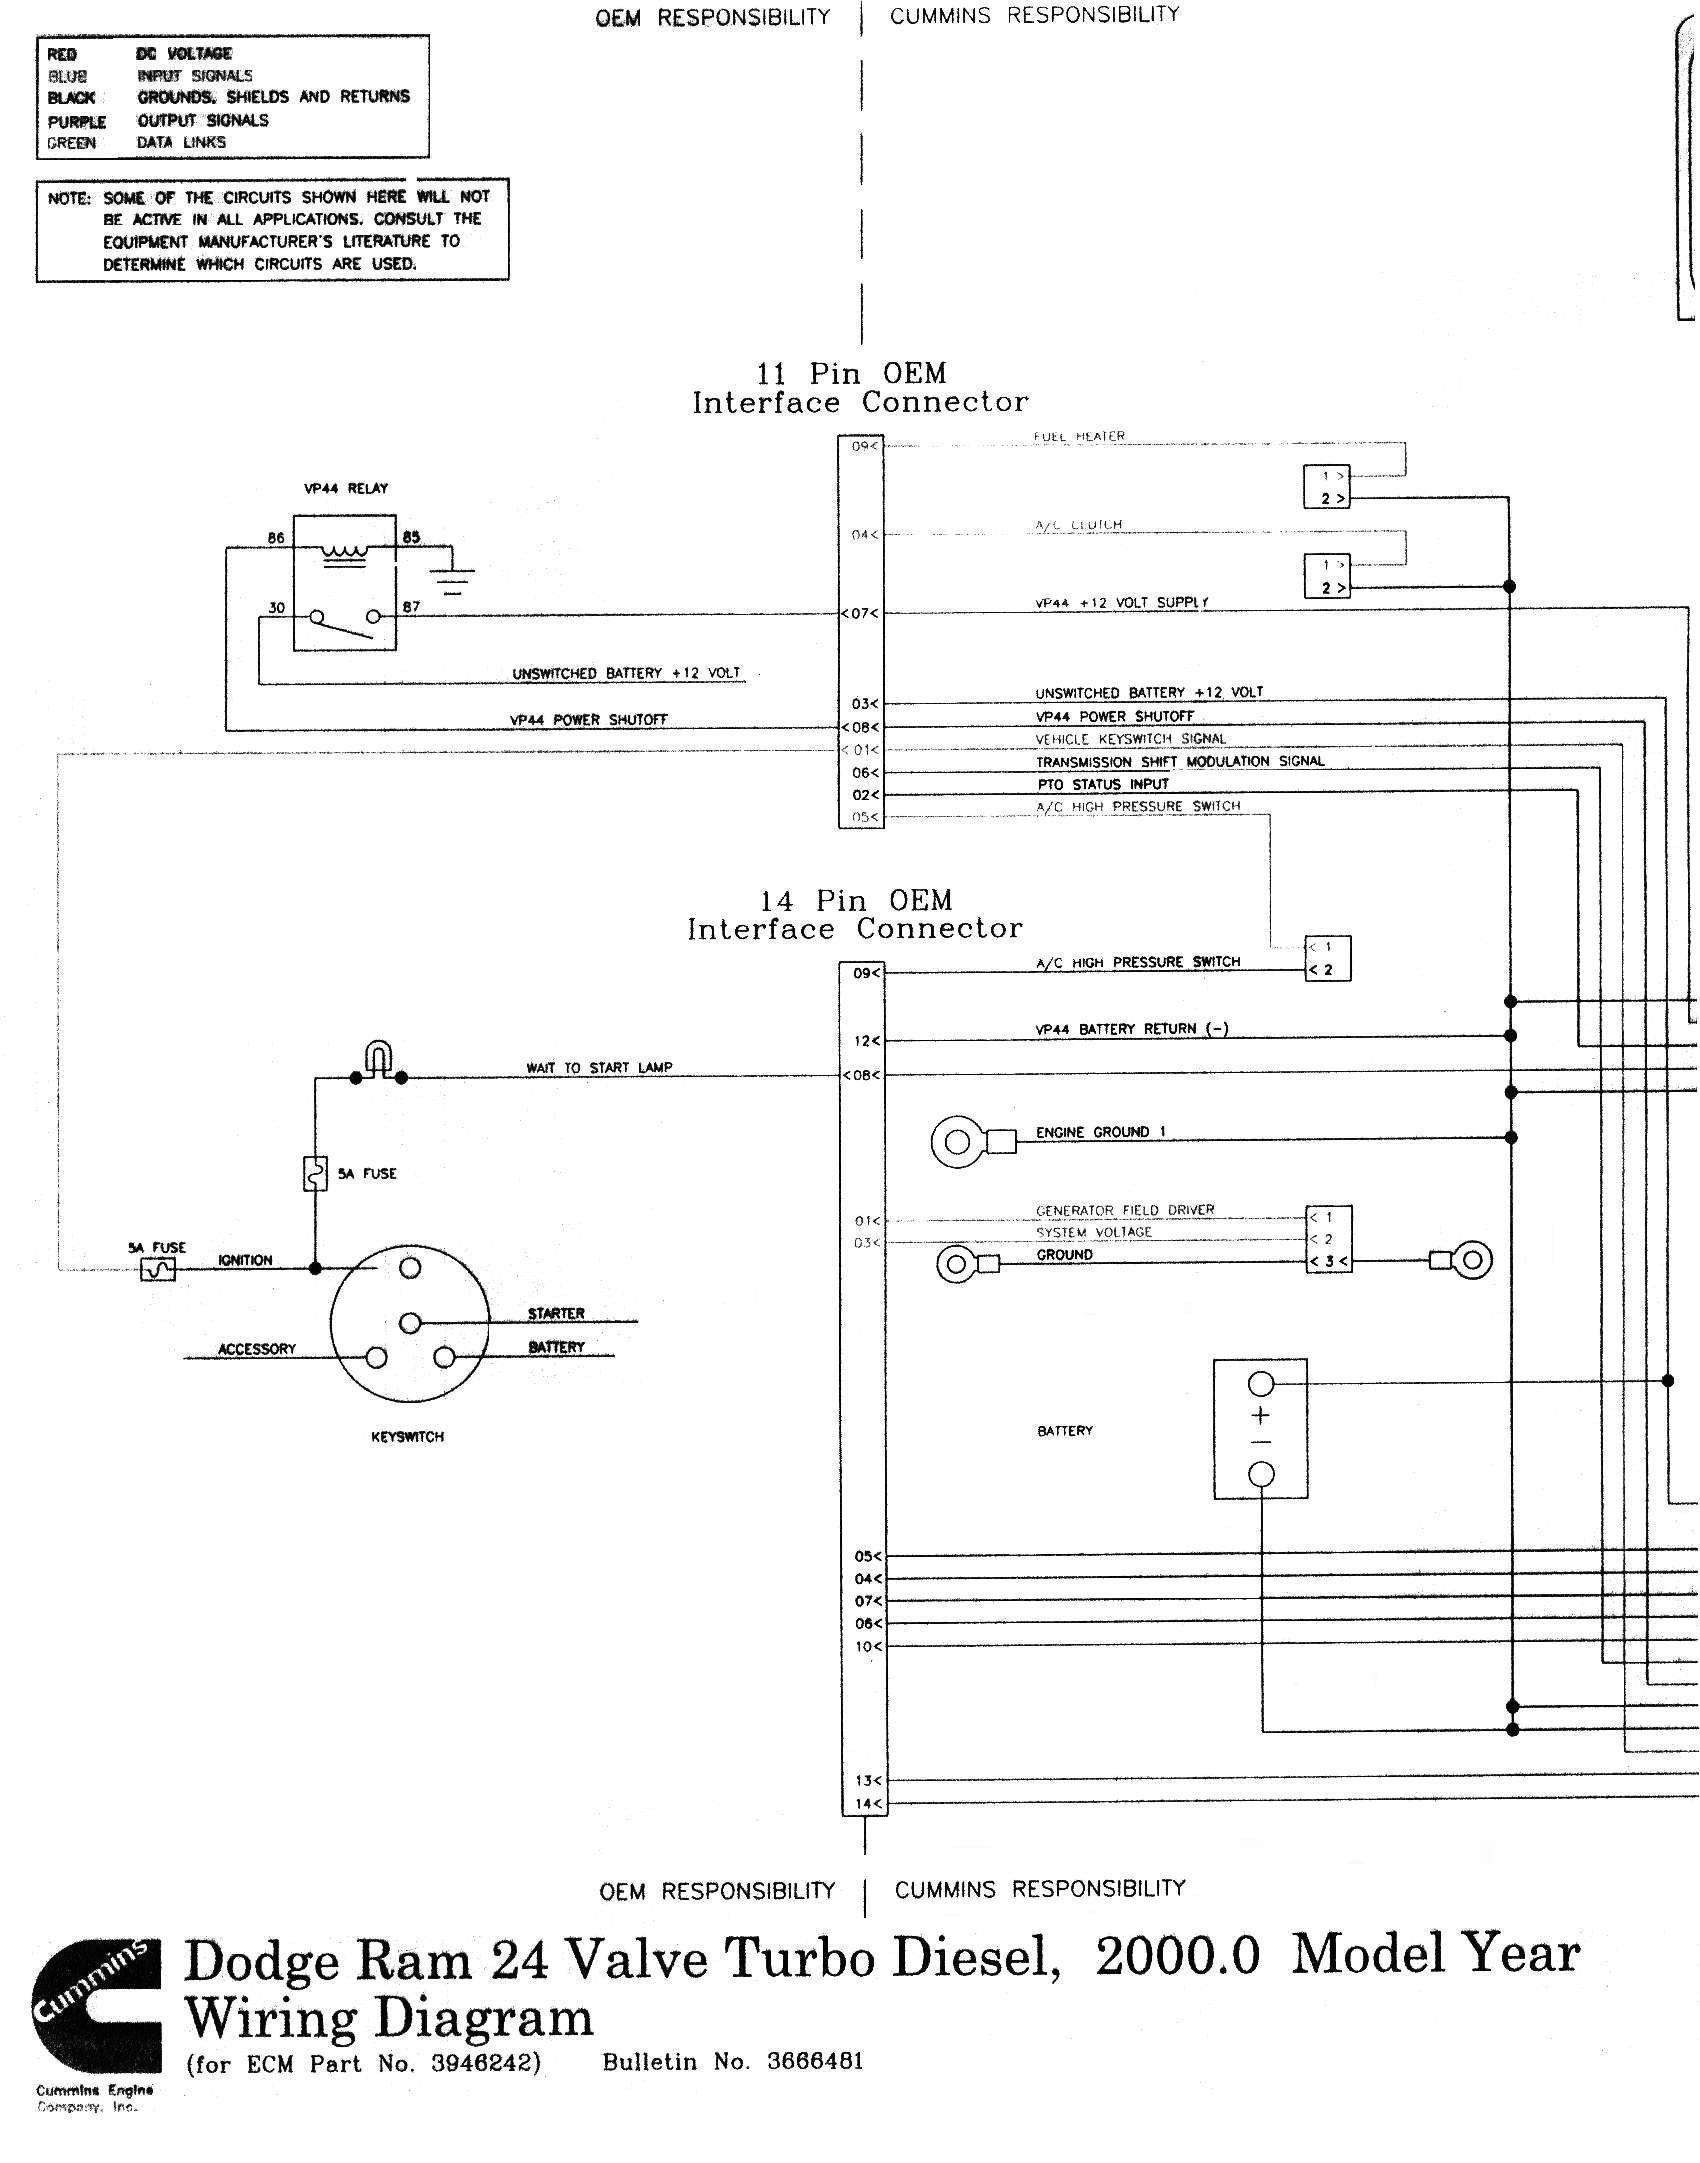 Cummins Diesel Engine Diagram Dodge Cummins Diesel Fuel Line Diagram Dodge Obd Connector Wiring Of Cummins Diesel Engine Diagram